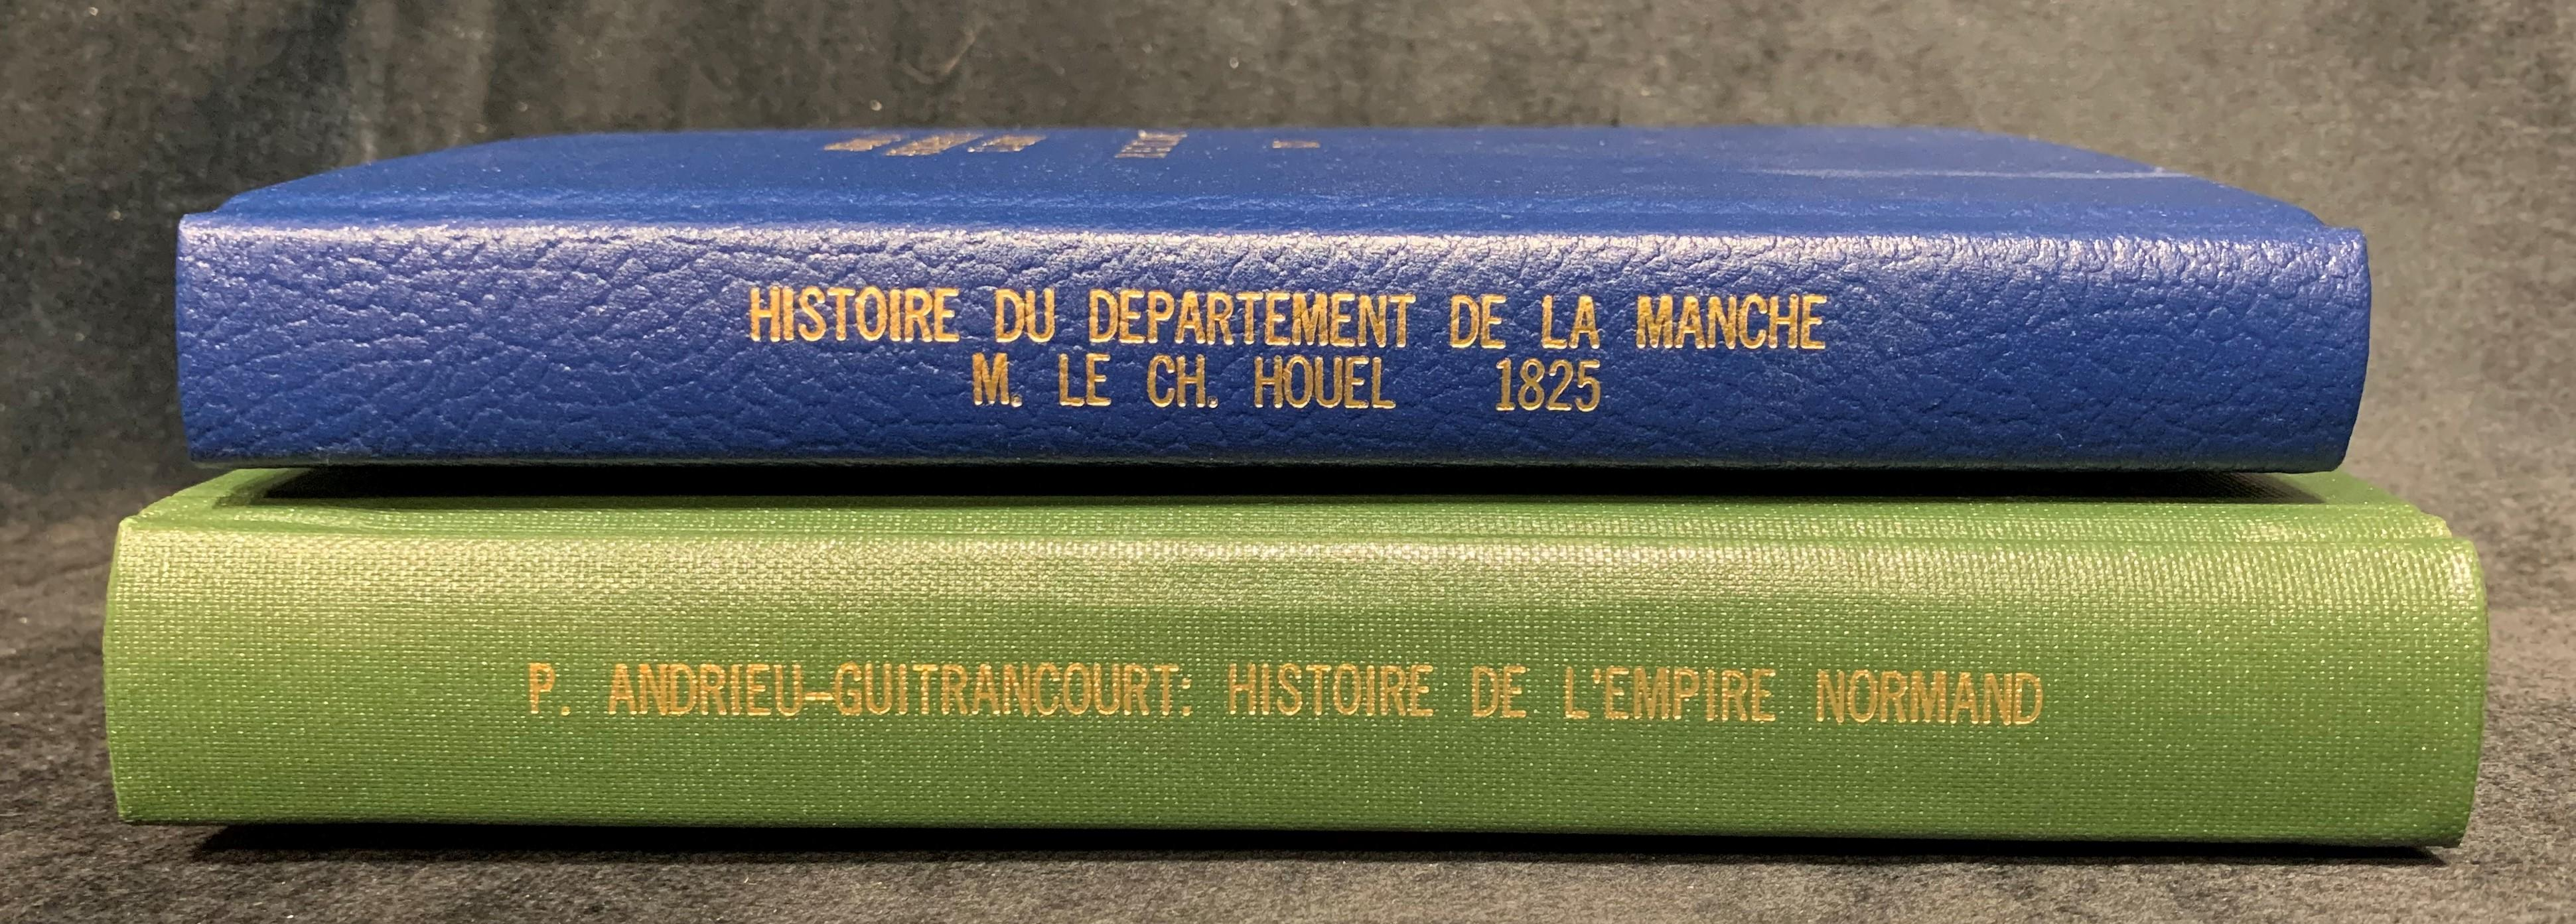 Old Harcover French Books